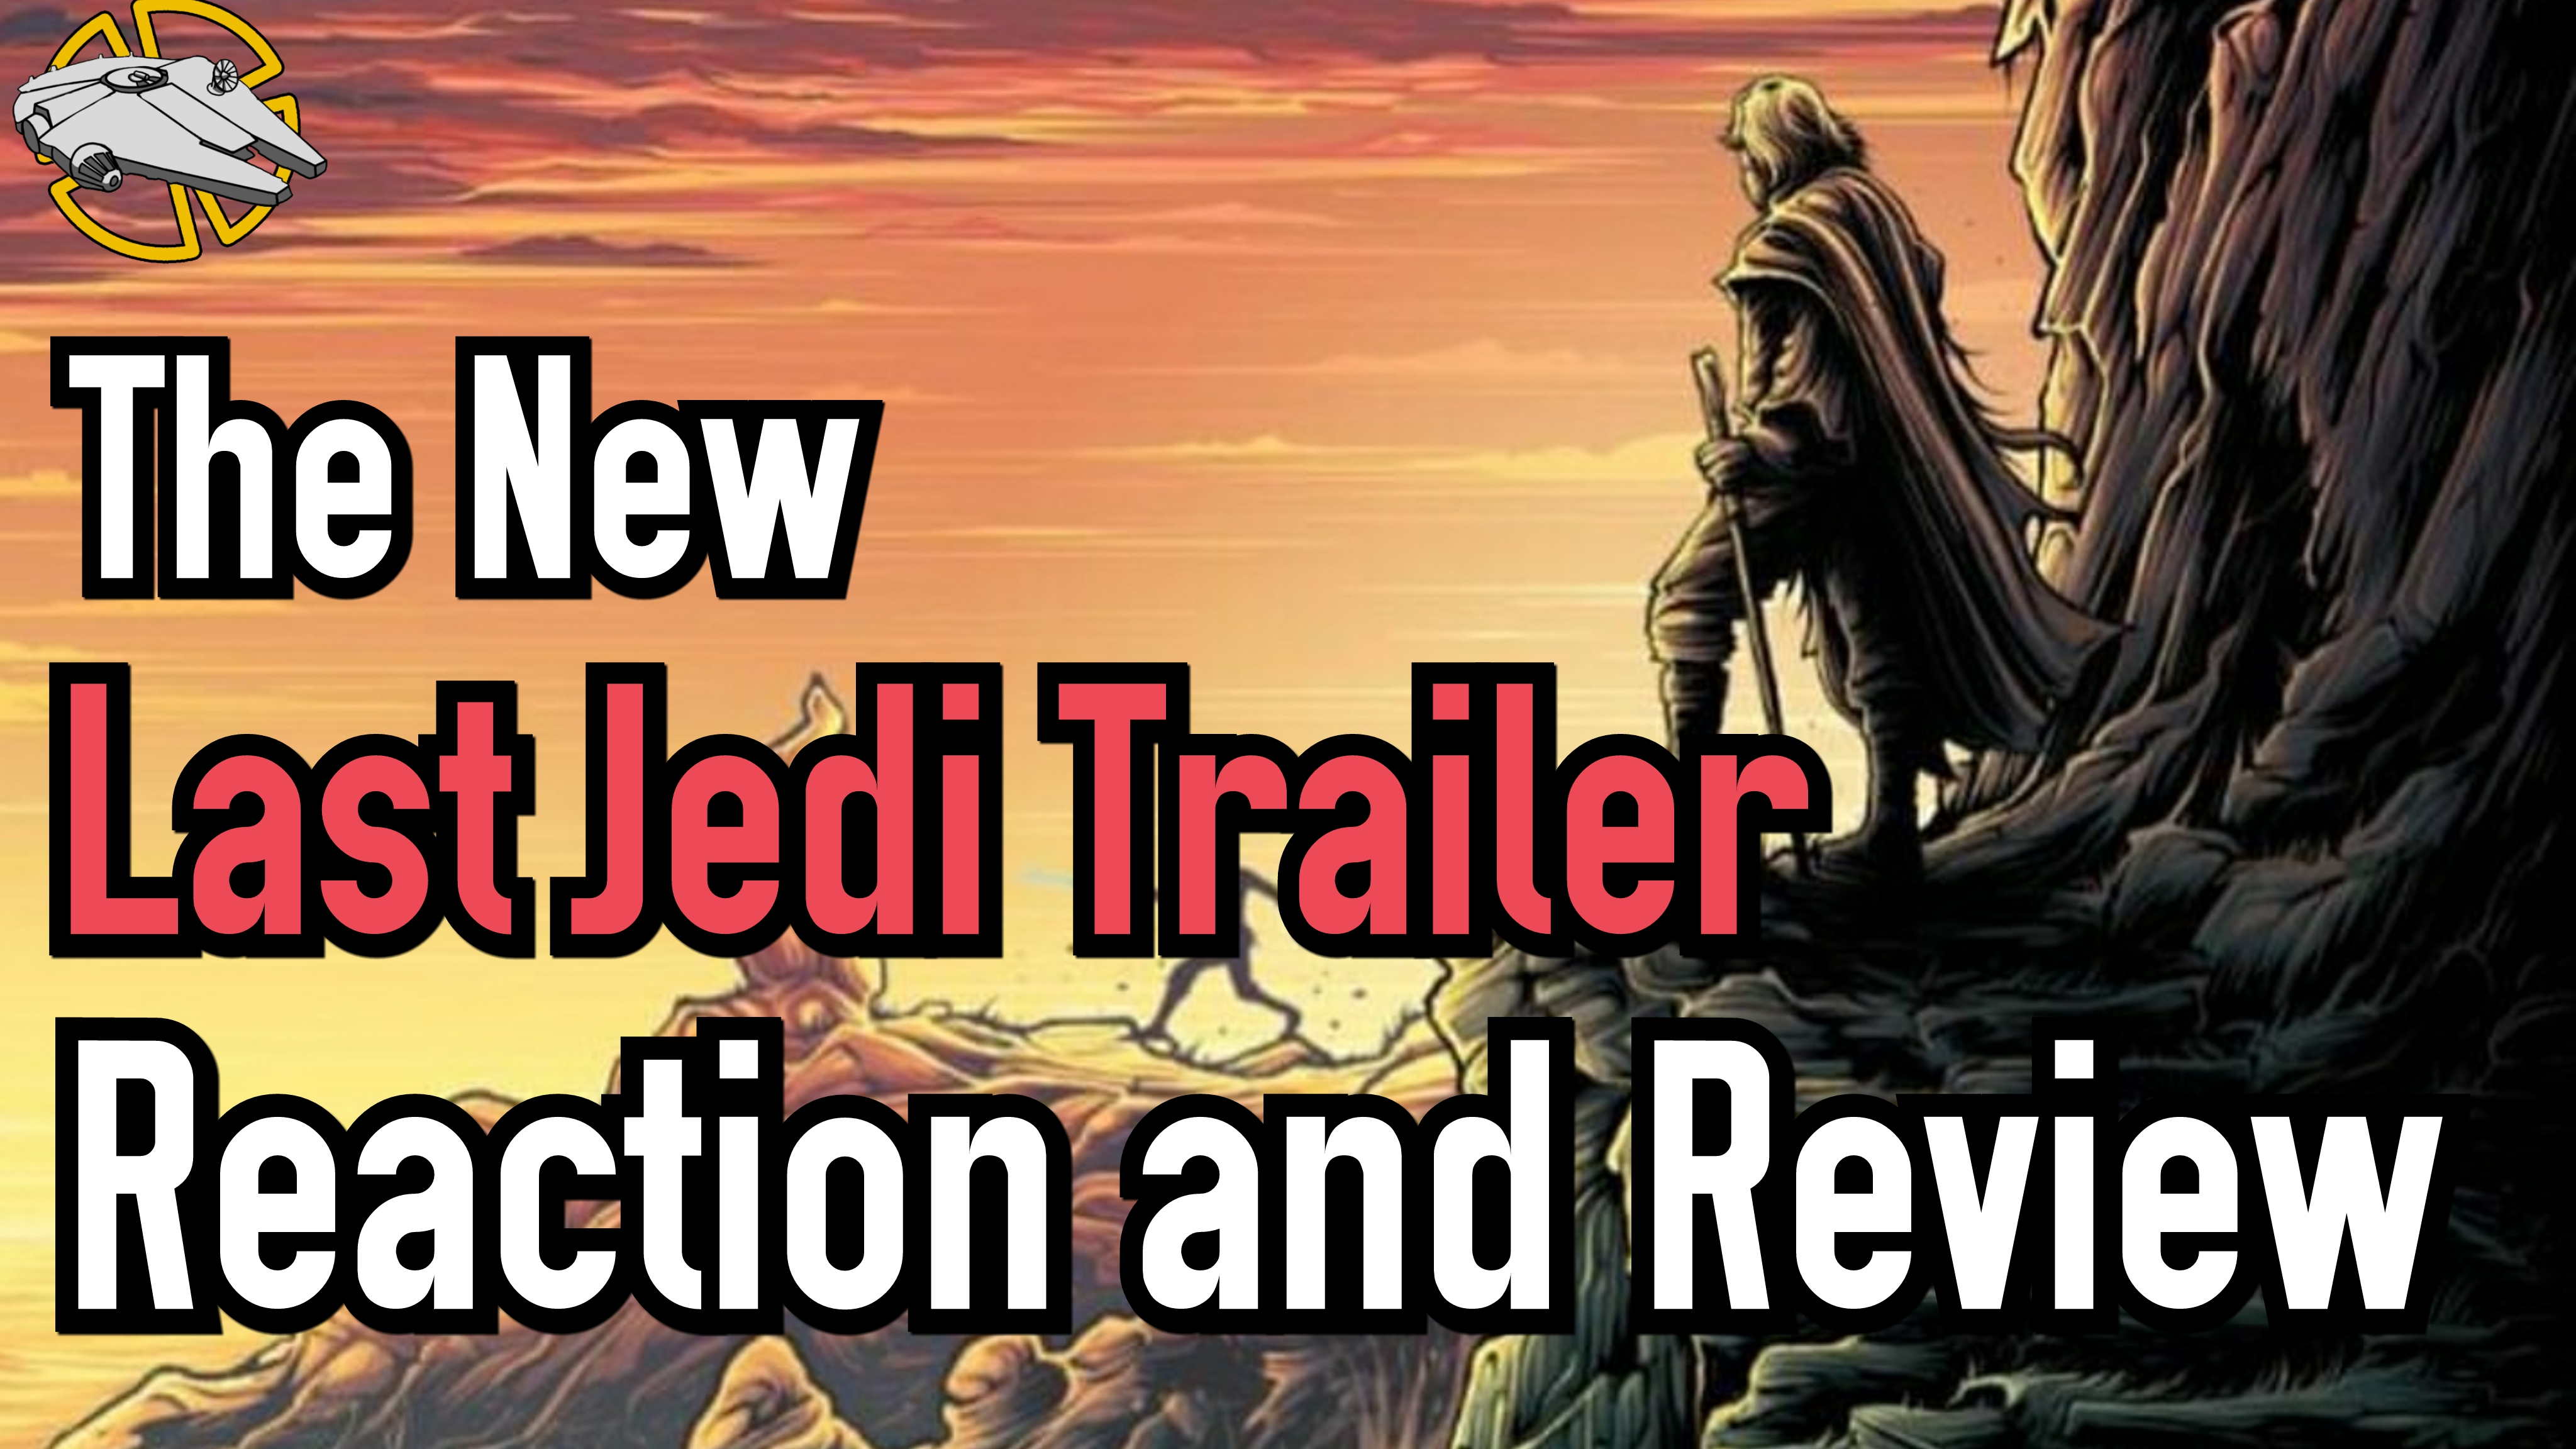 THE LAST JEDI: Trailer Reaction and Review